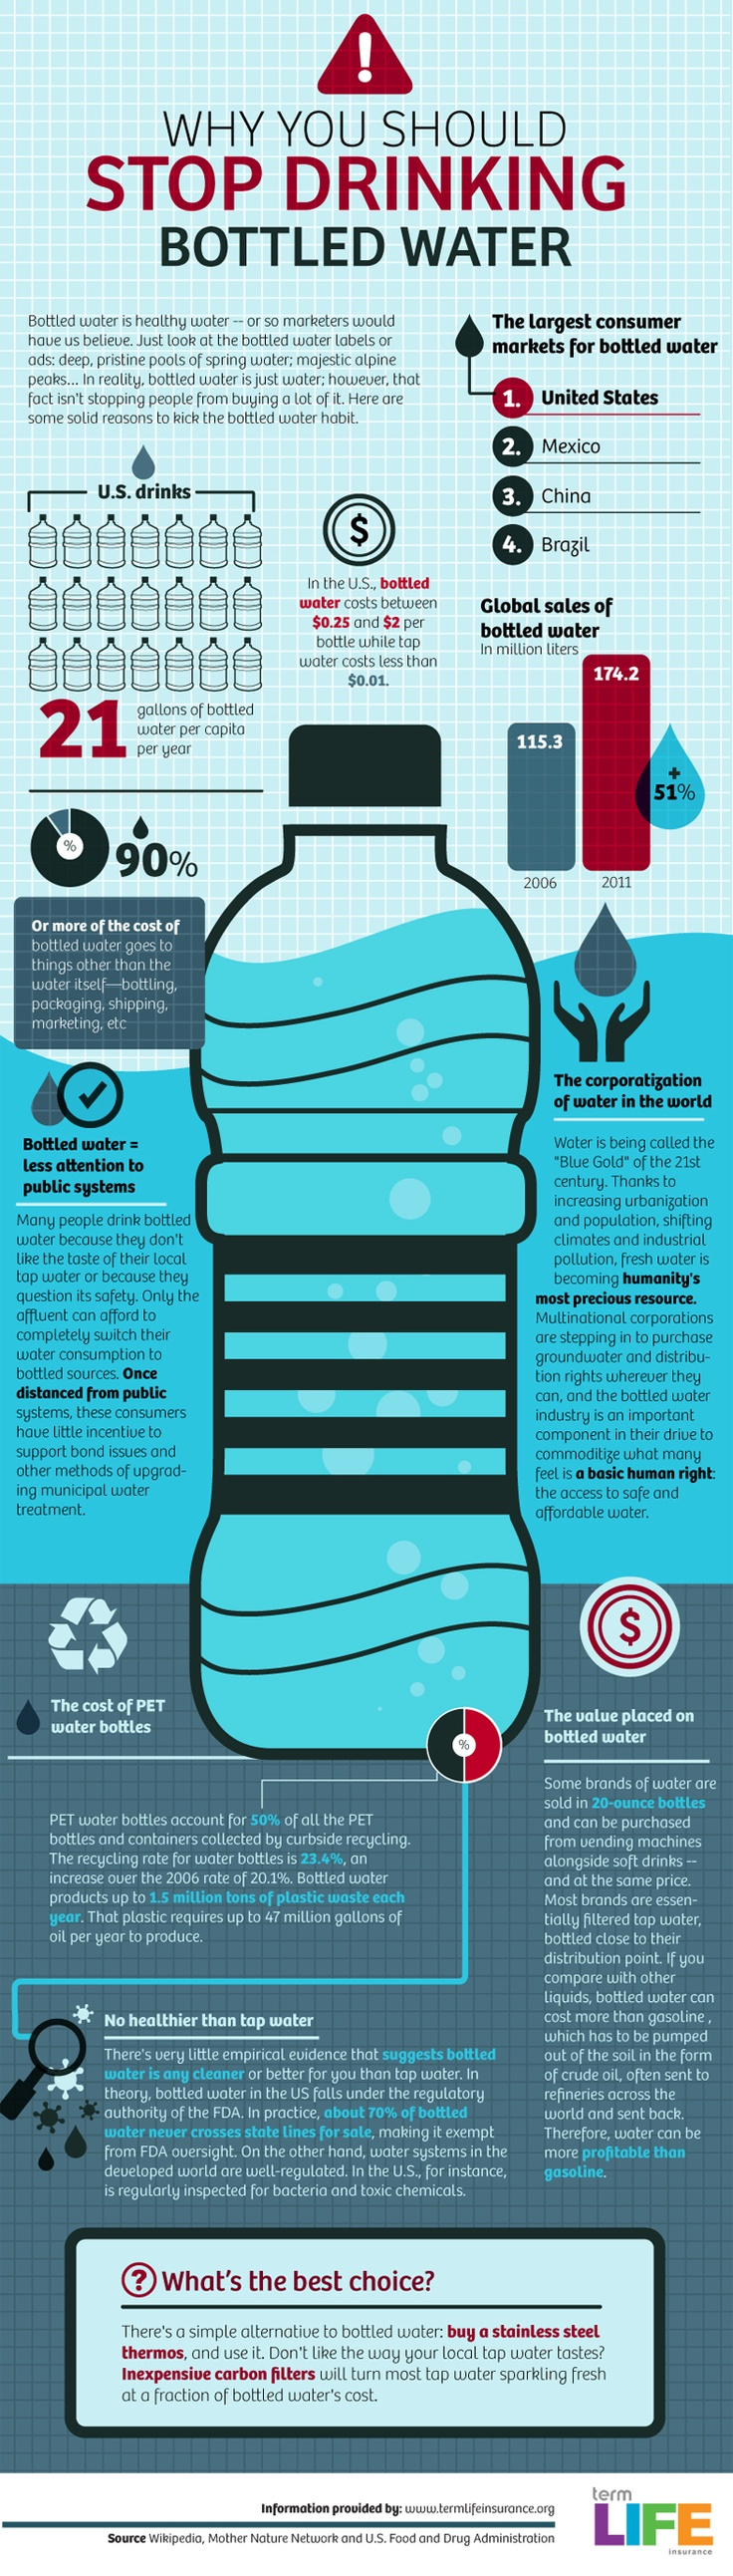 Why should you stop drinking bottled water - Flávia Marinho